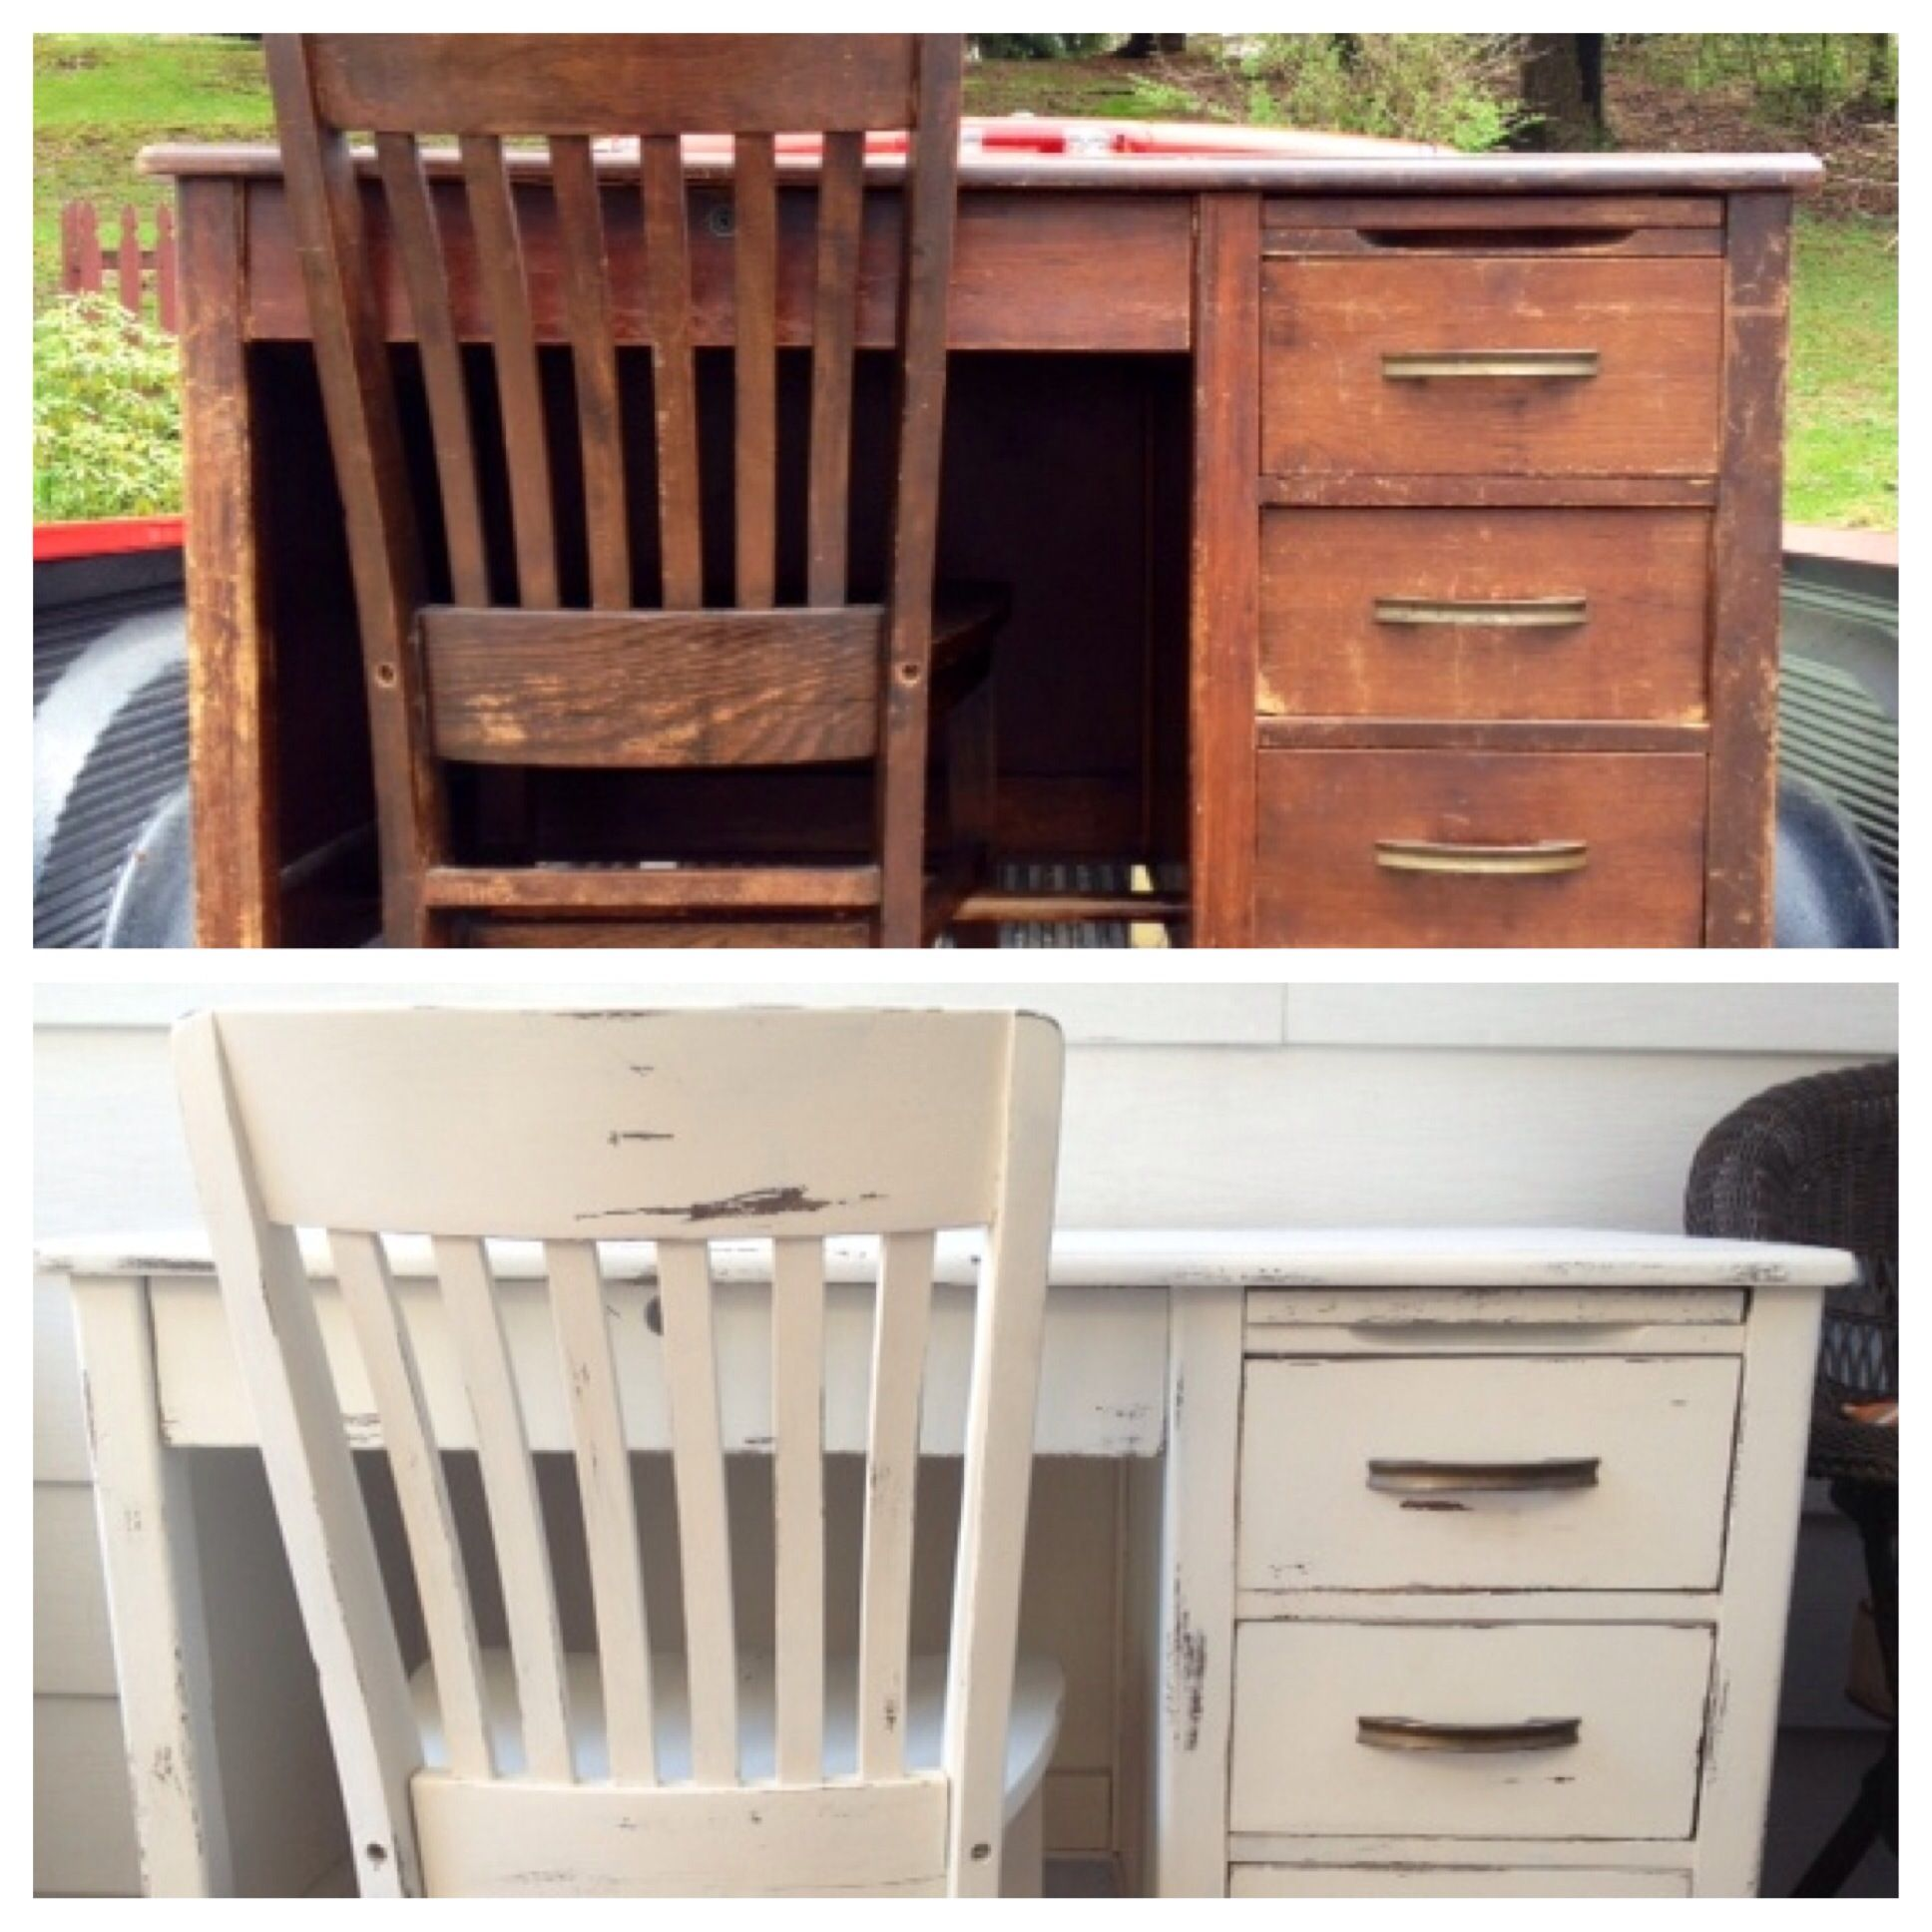 36+ ideas repurposed furniture before and after dresser ... |Repurposed Furniture Before And After